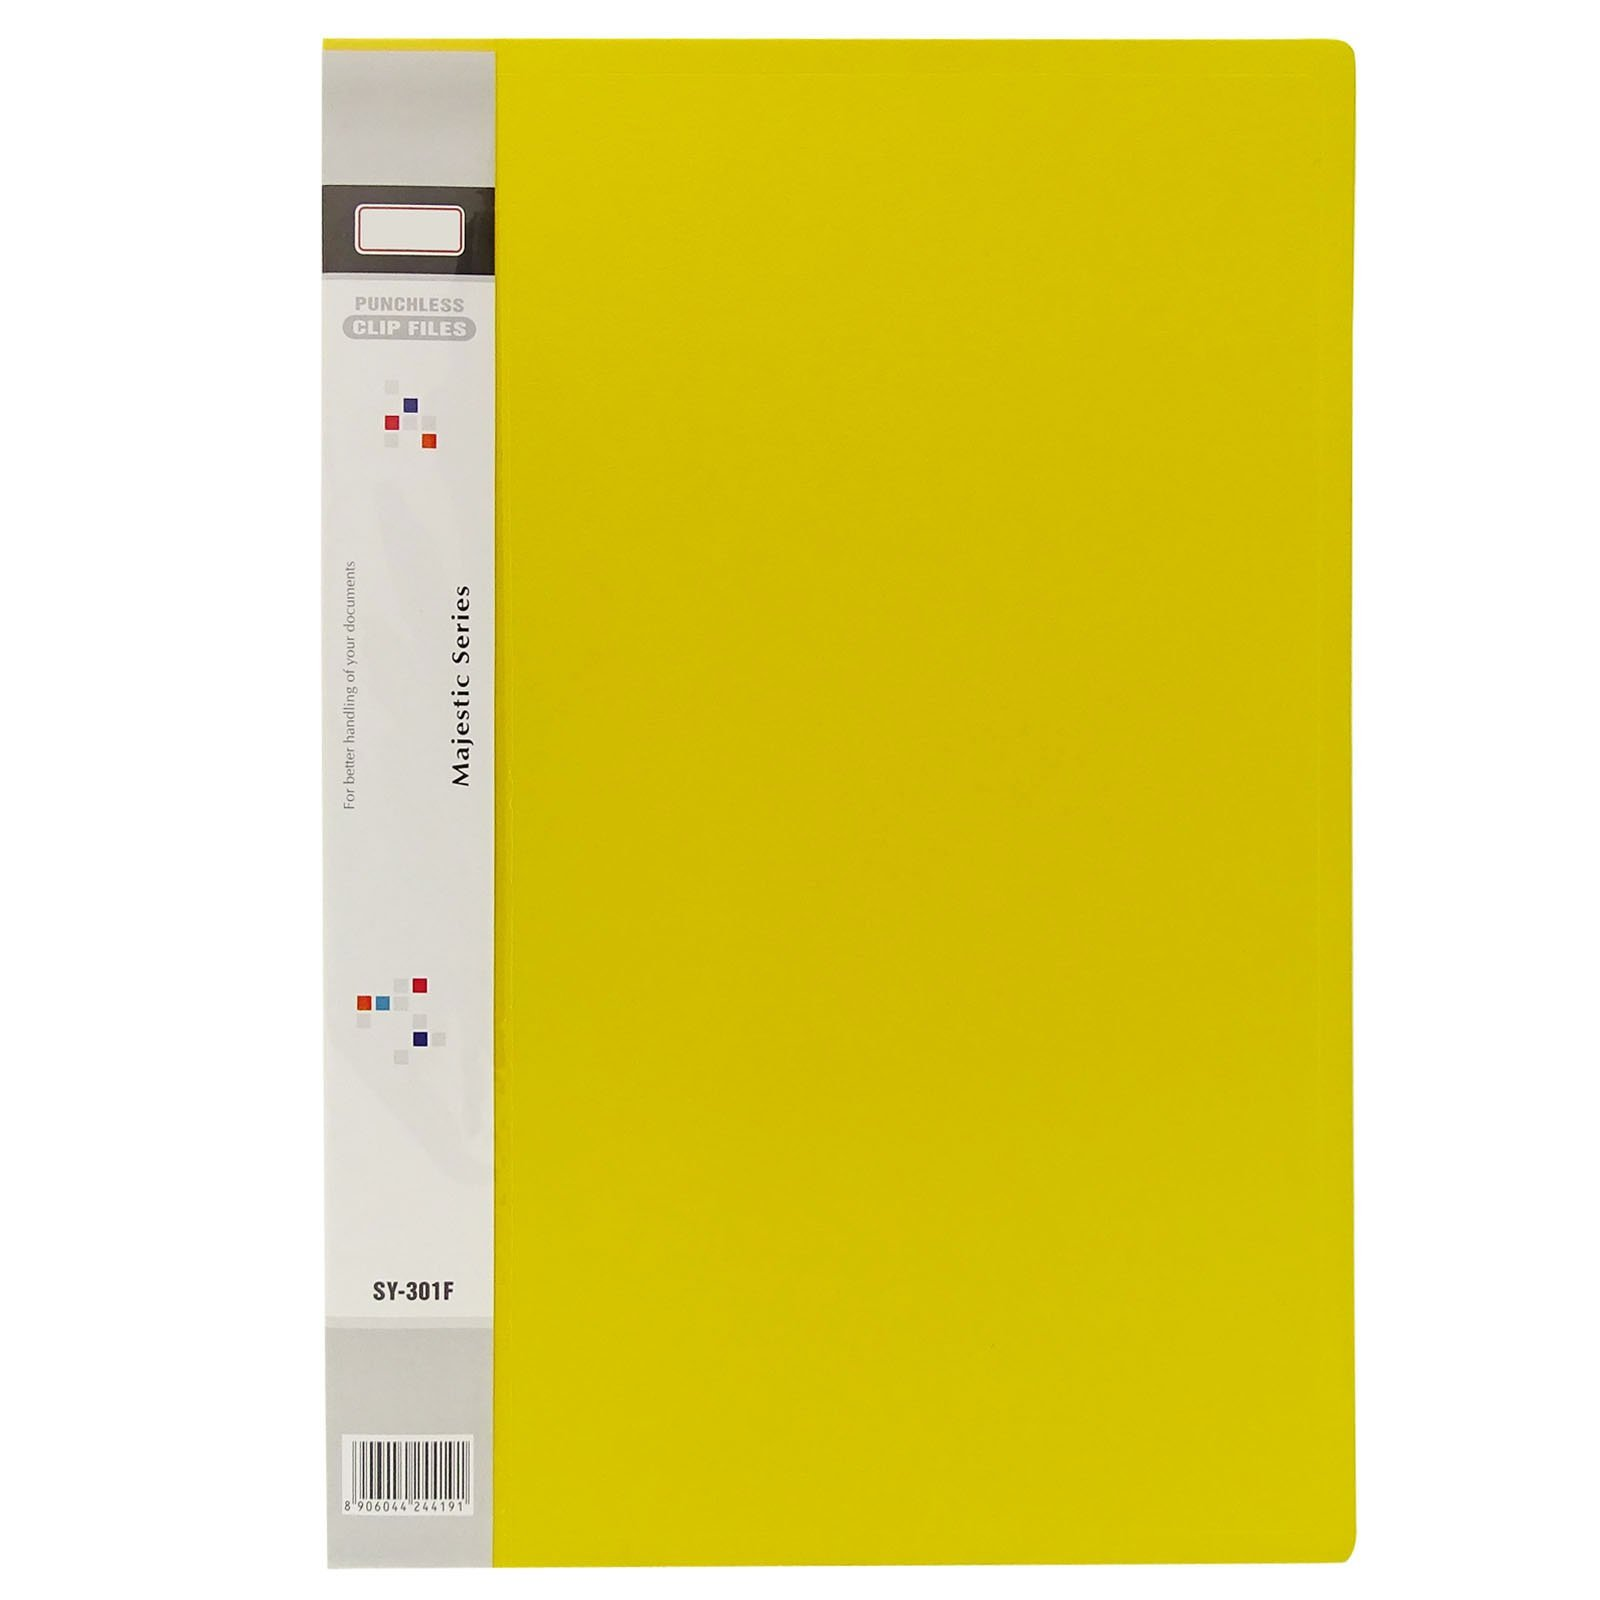 Yellow Report File Clamp Folder Foolscap A4 Size Document Filing Office Supplies Pack of 25 Pcs